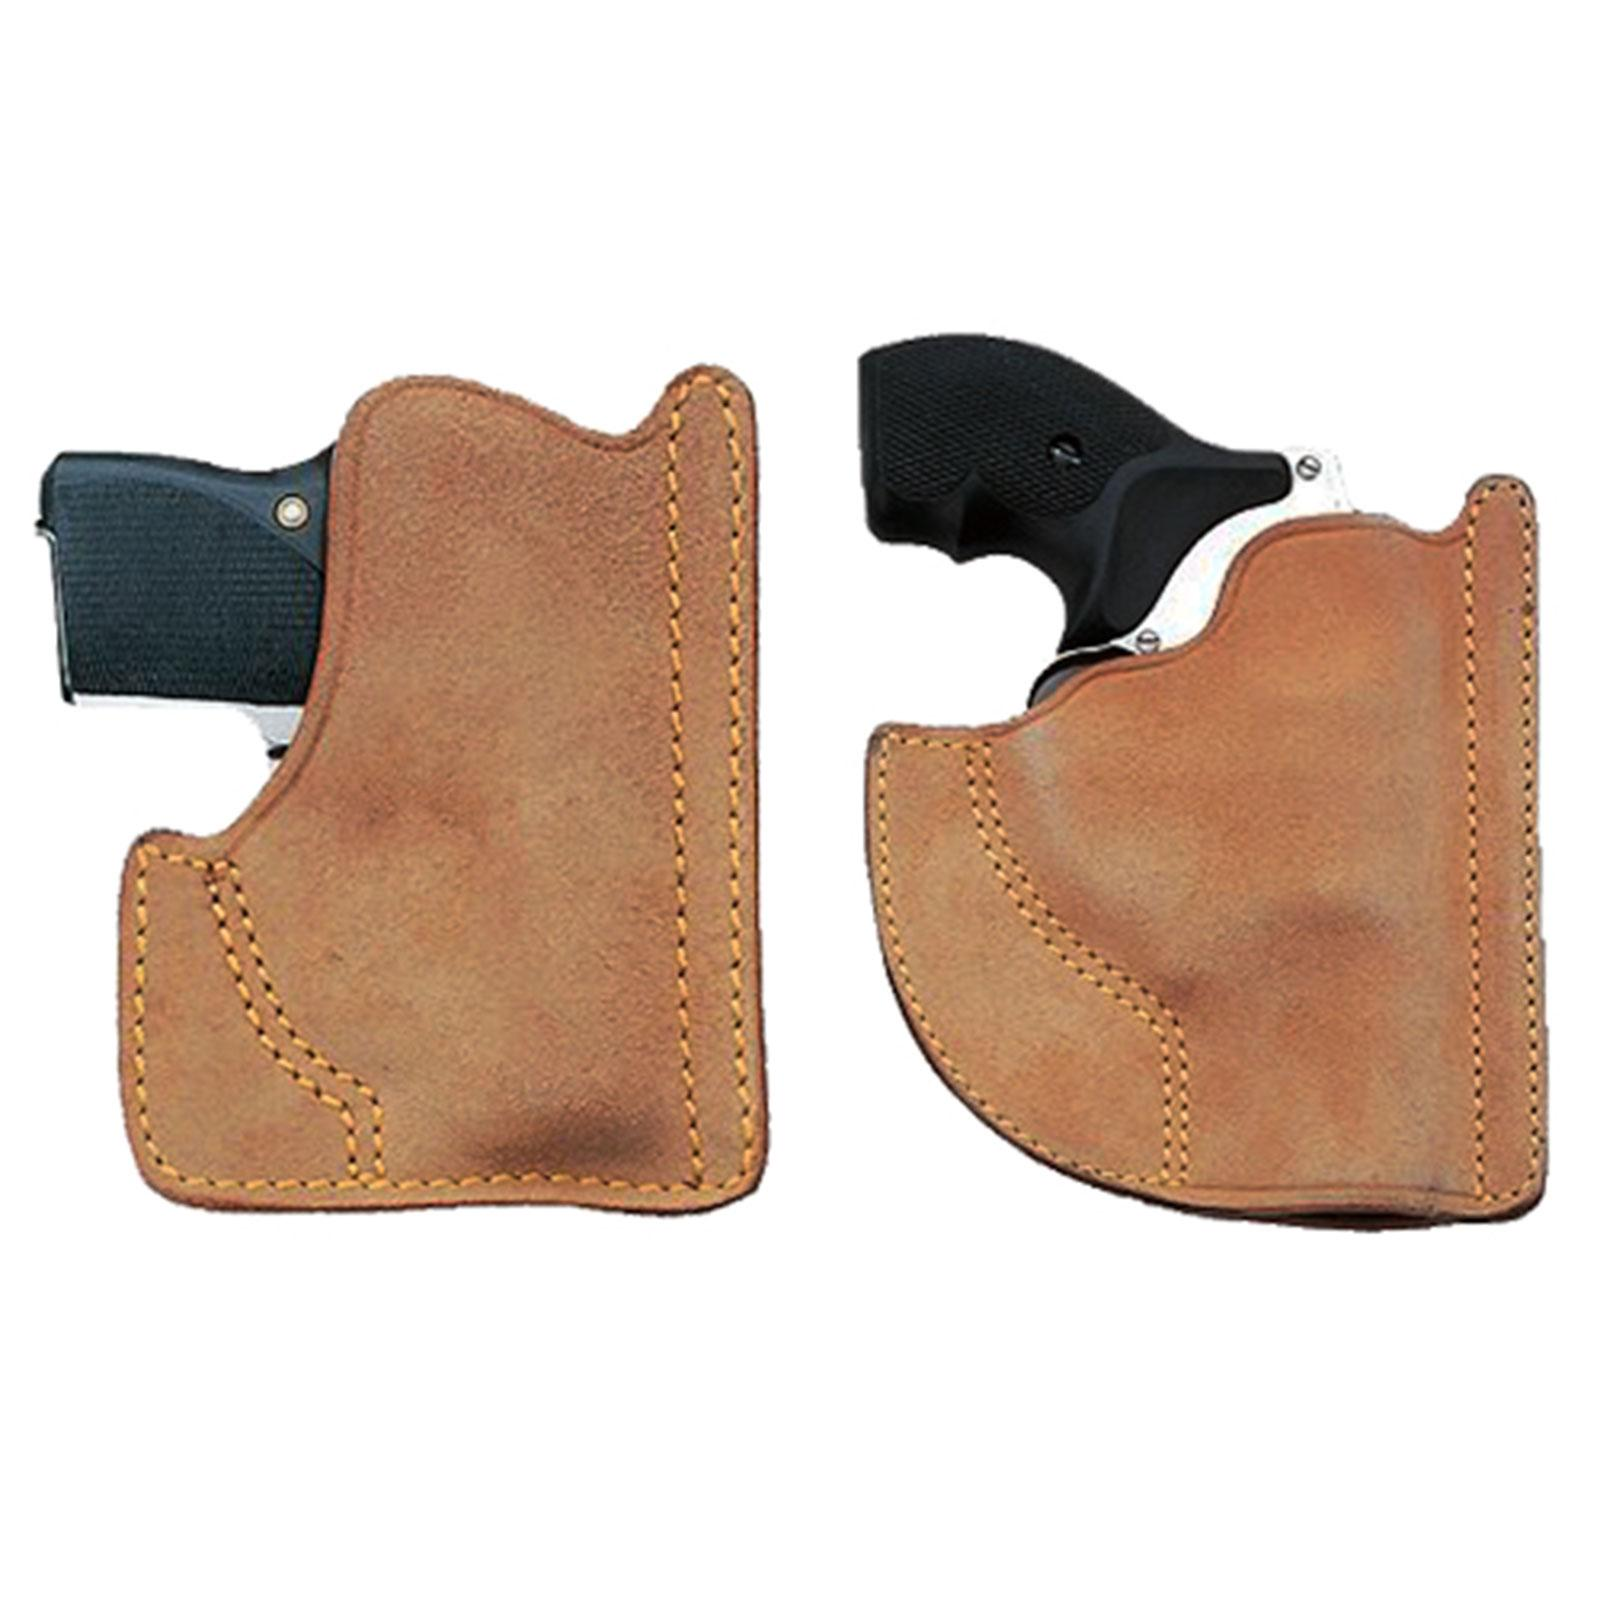 Galco PH286 FRONT POCKET HOLSTER 286 Pocket Natural Horsehide Leather by GALCO INTERNATIONAL